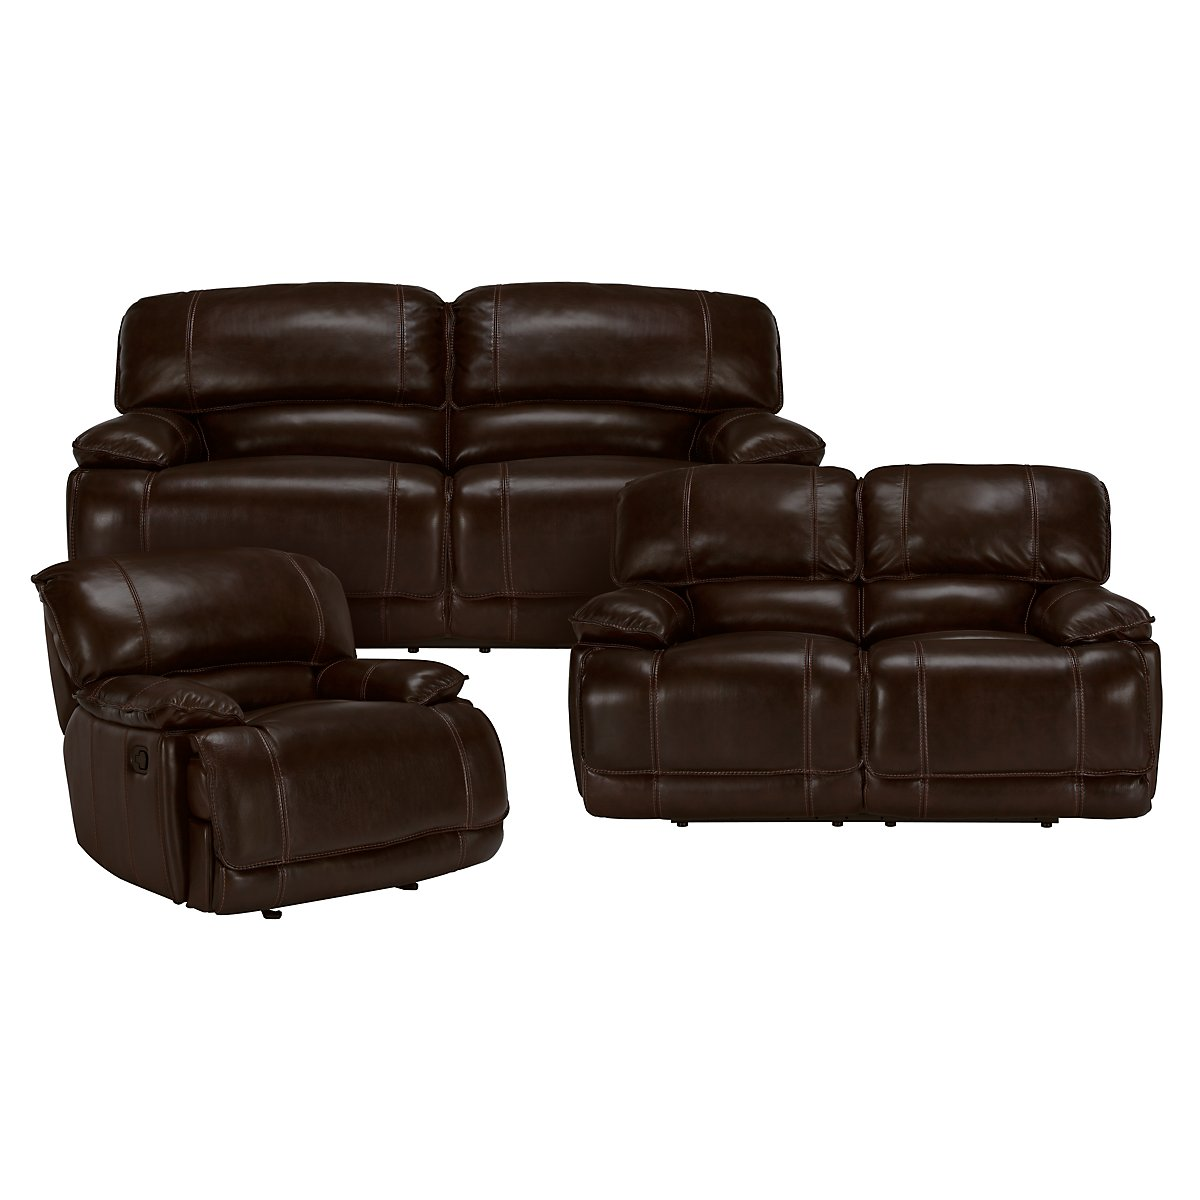 Benson Dark Brown Leather & Vinyl Manually Reclining Living Room